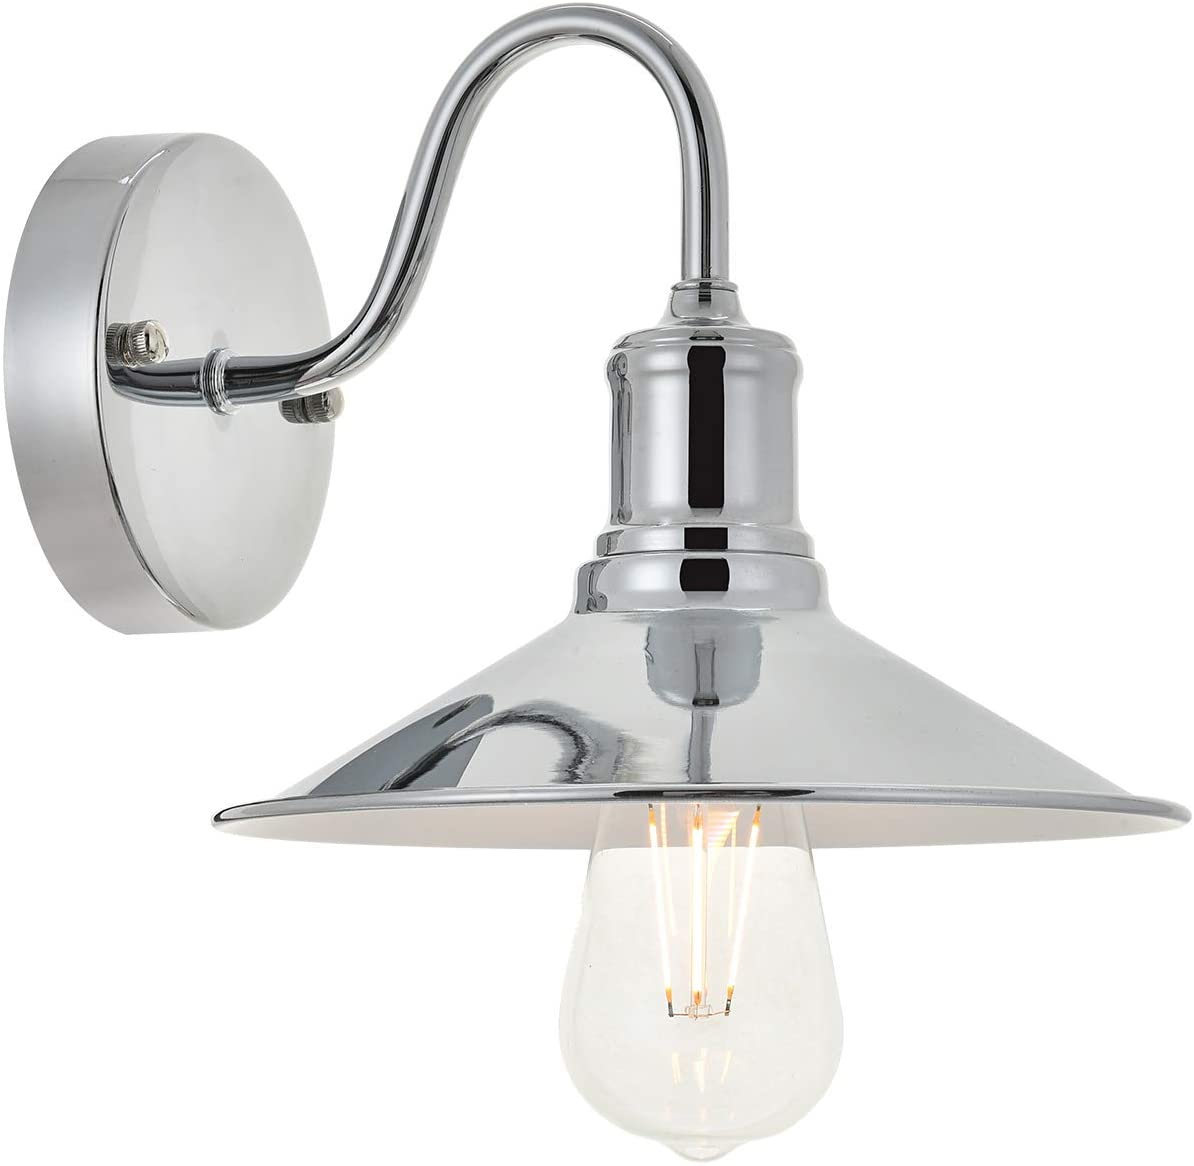 TODOLUZ Modern Goose-Neck Sconce Wall Lamps with Polished Chrome Stylish Wall Mount Light Fixture for Bedroom Bathroom